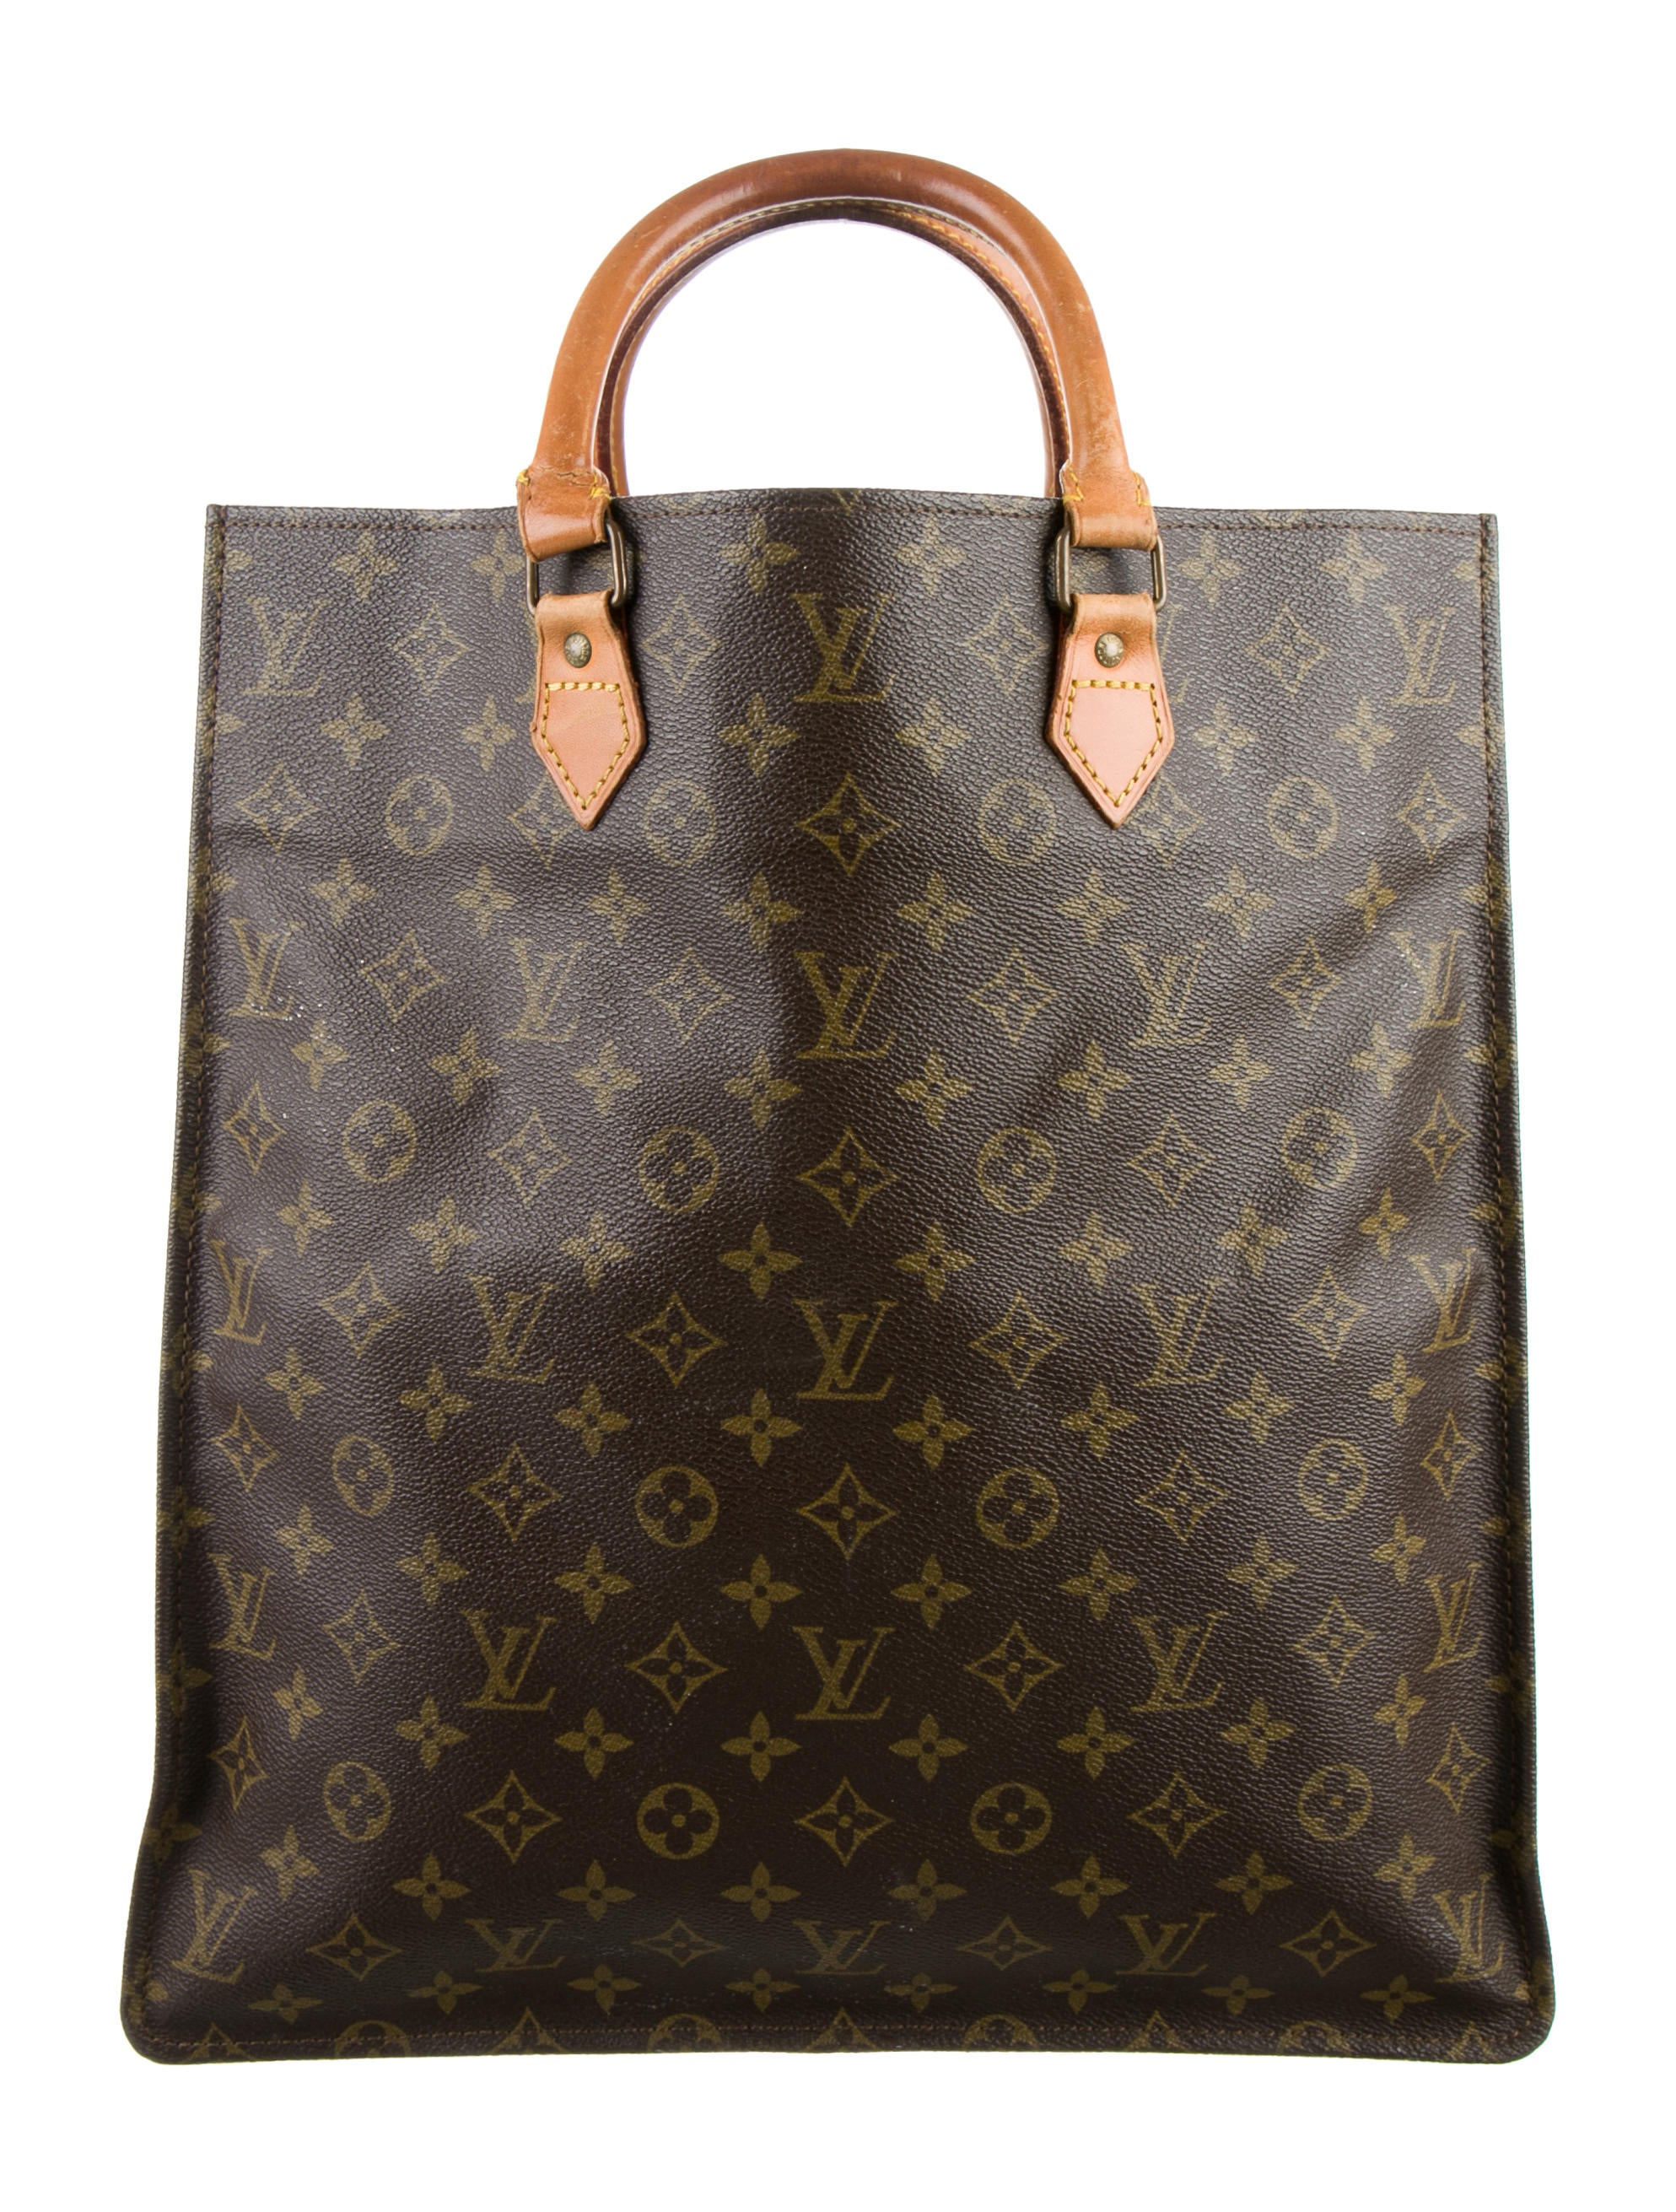 Louis vuitton monogram sac plat handbags lou85899 for Louis vuitton monogram miroir sac plat